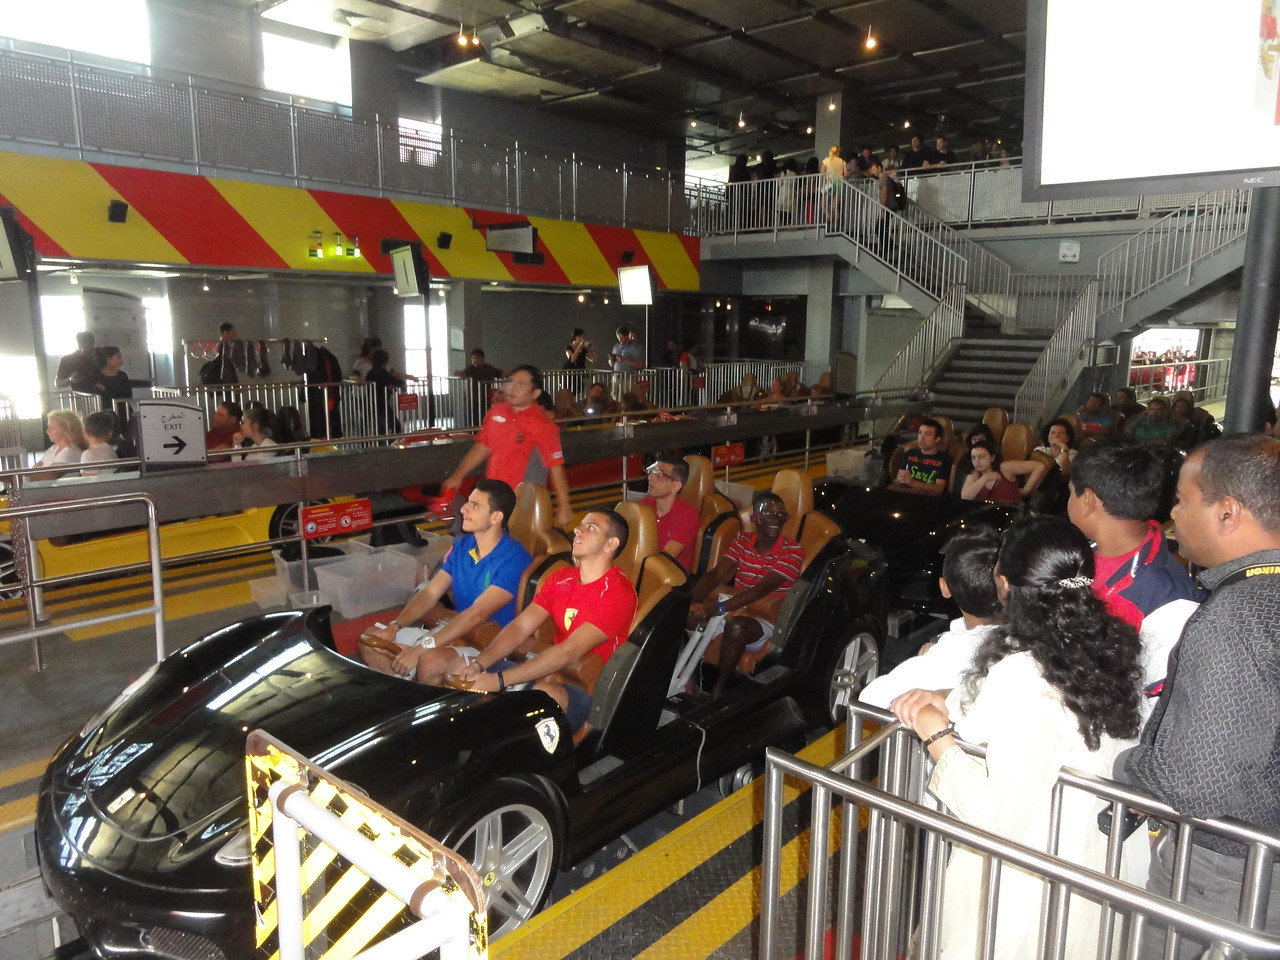 One of the fast rides here.  This is the second fastest.  No pics of the fastest as no time!!!